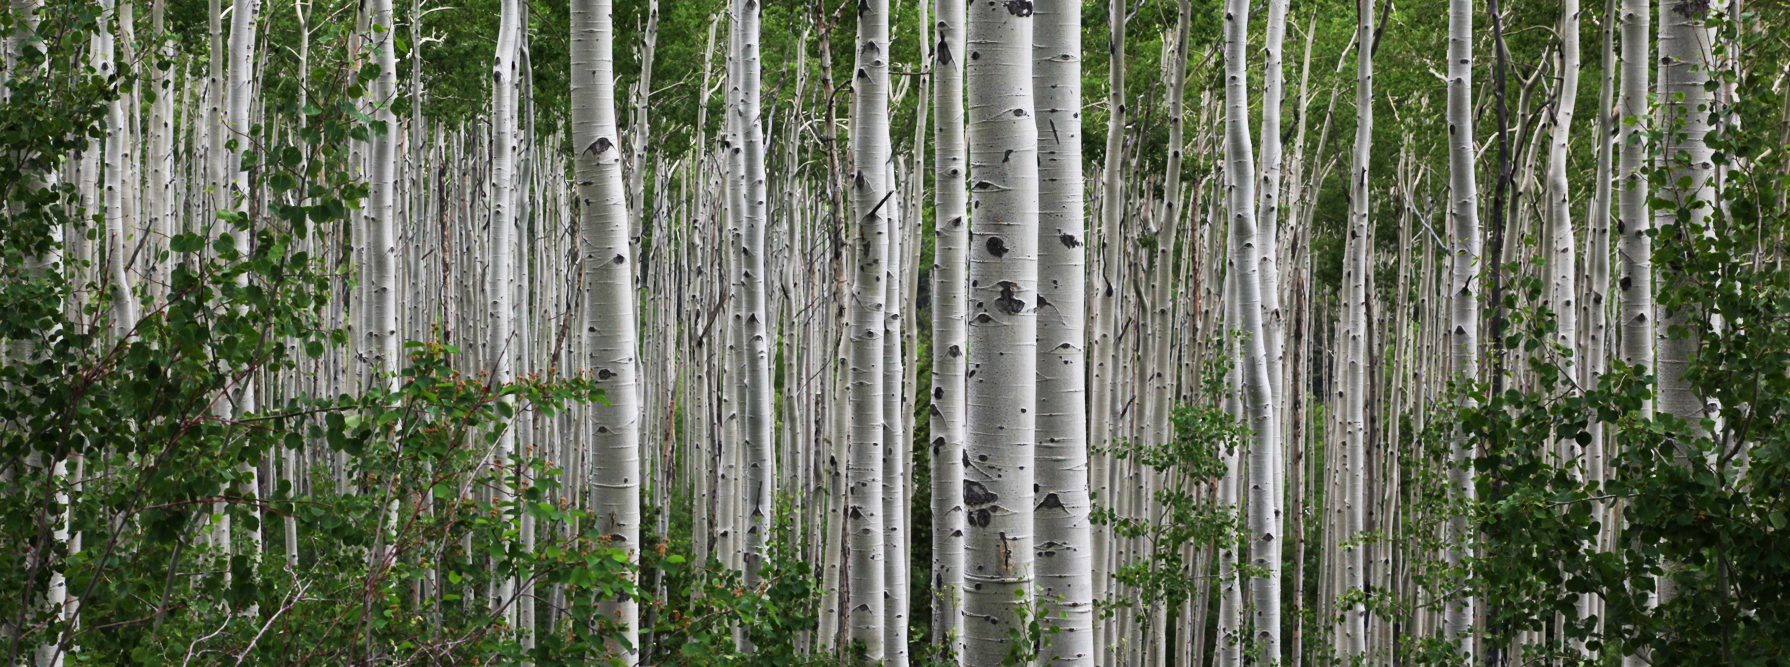 aspen-grove-cropped-plain